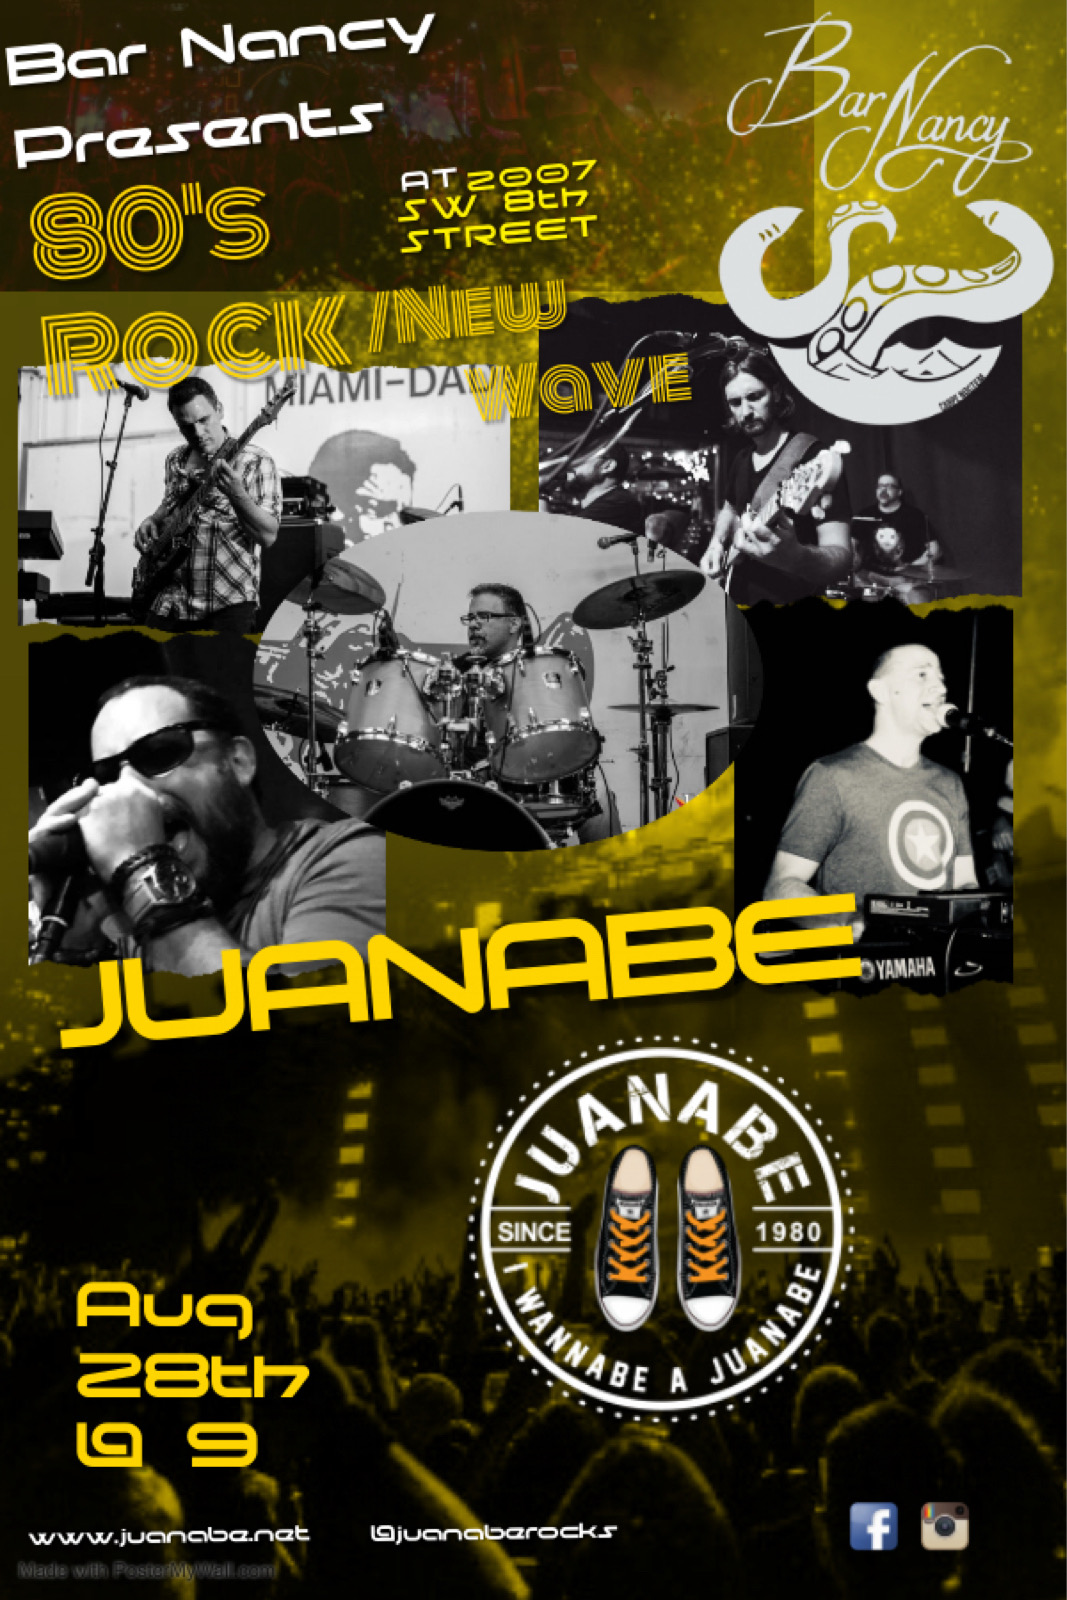 JUANABE - 80 ROCK - NEW WAVE at Bar Nancy - August 28th at 9PM